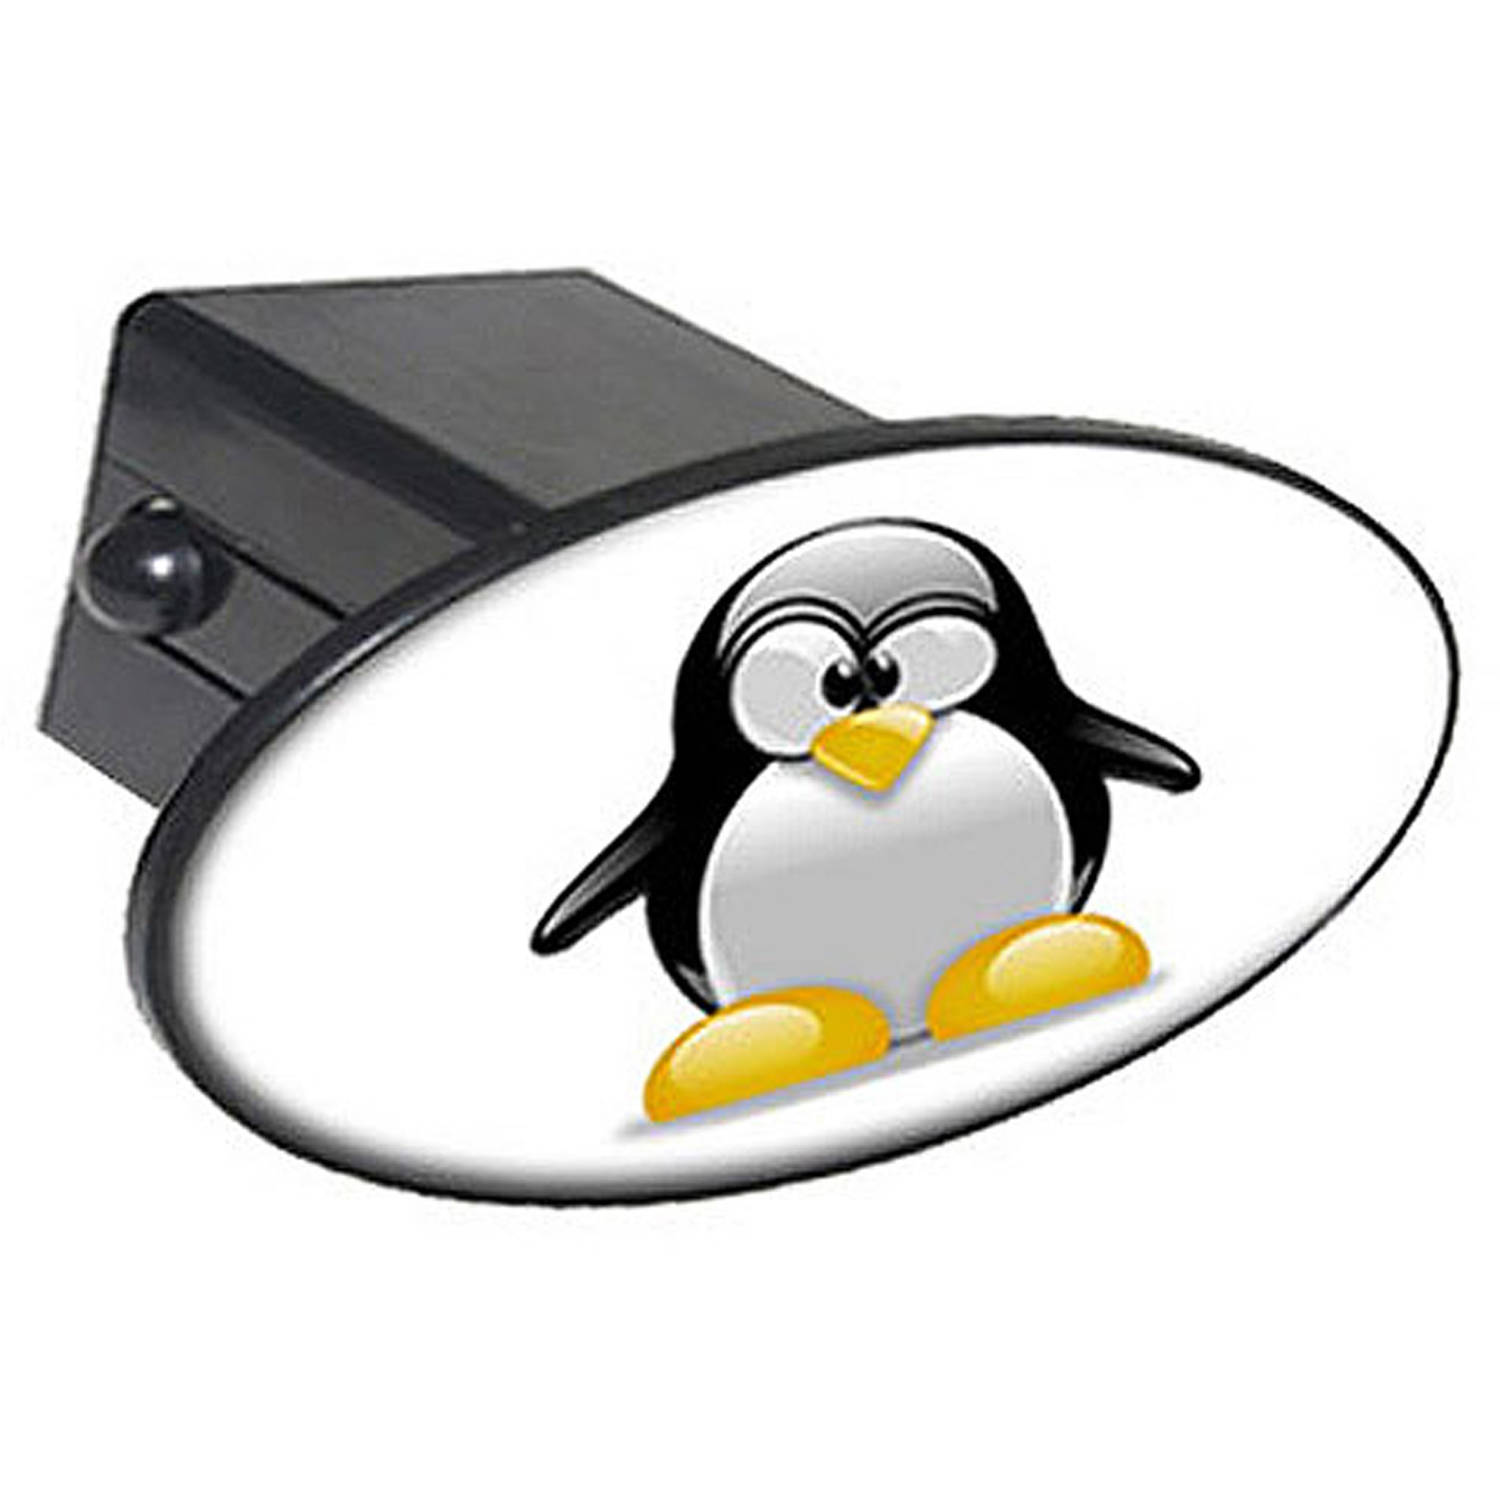 "Penguin Snow Bird 2"" Oval Tow Trailer Hitch Cover Plug Insert"